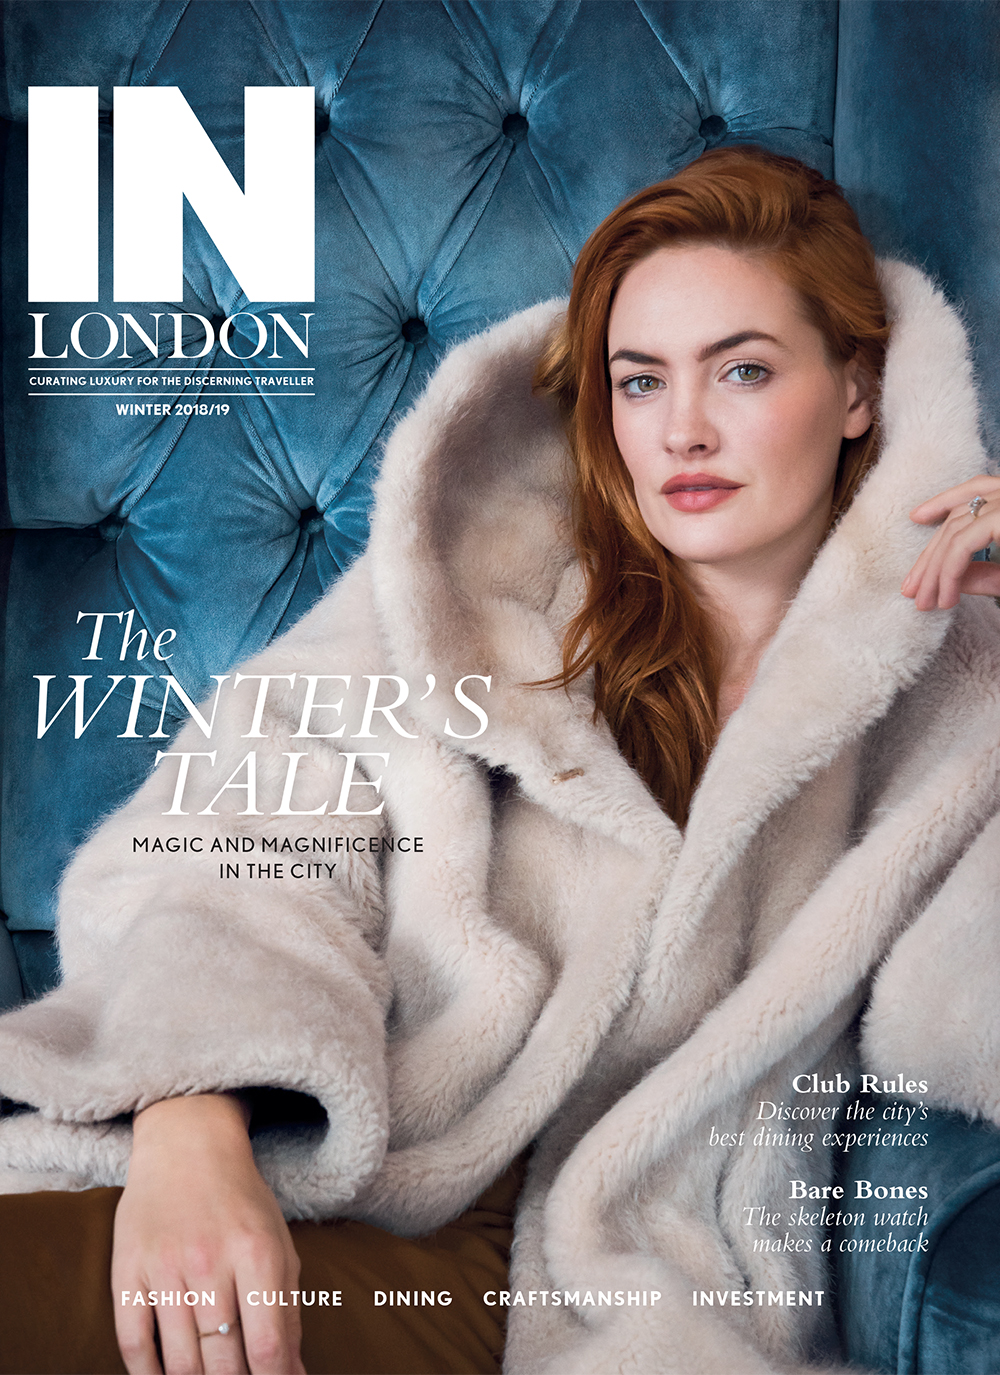 001-il-winter-18-outer-covers.jpg